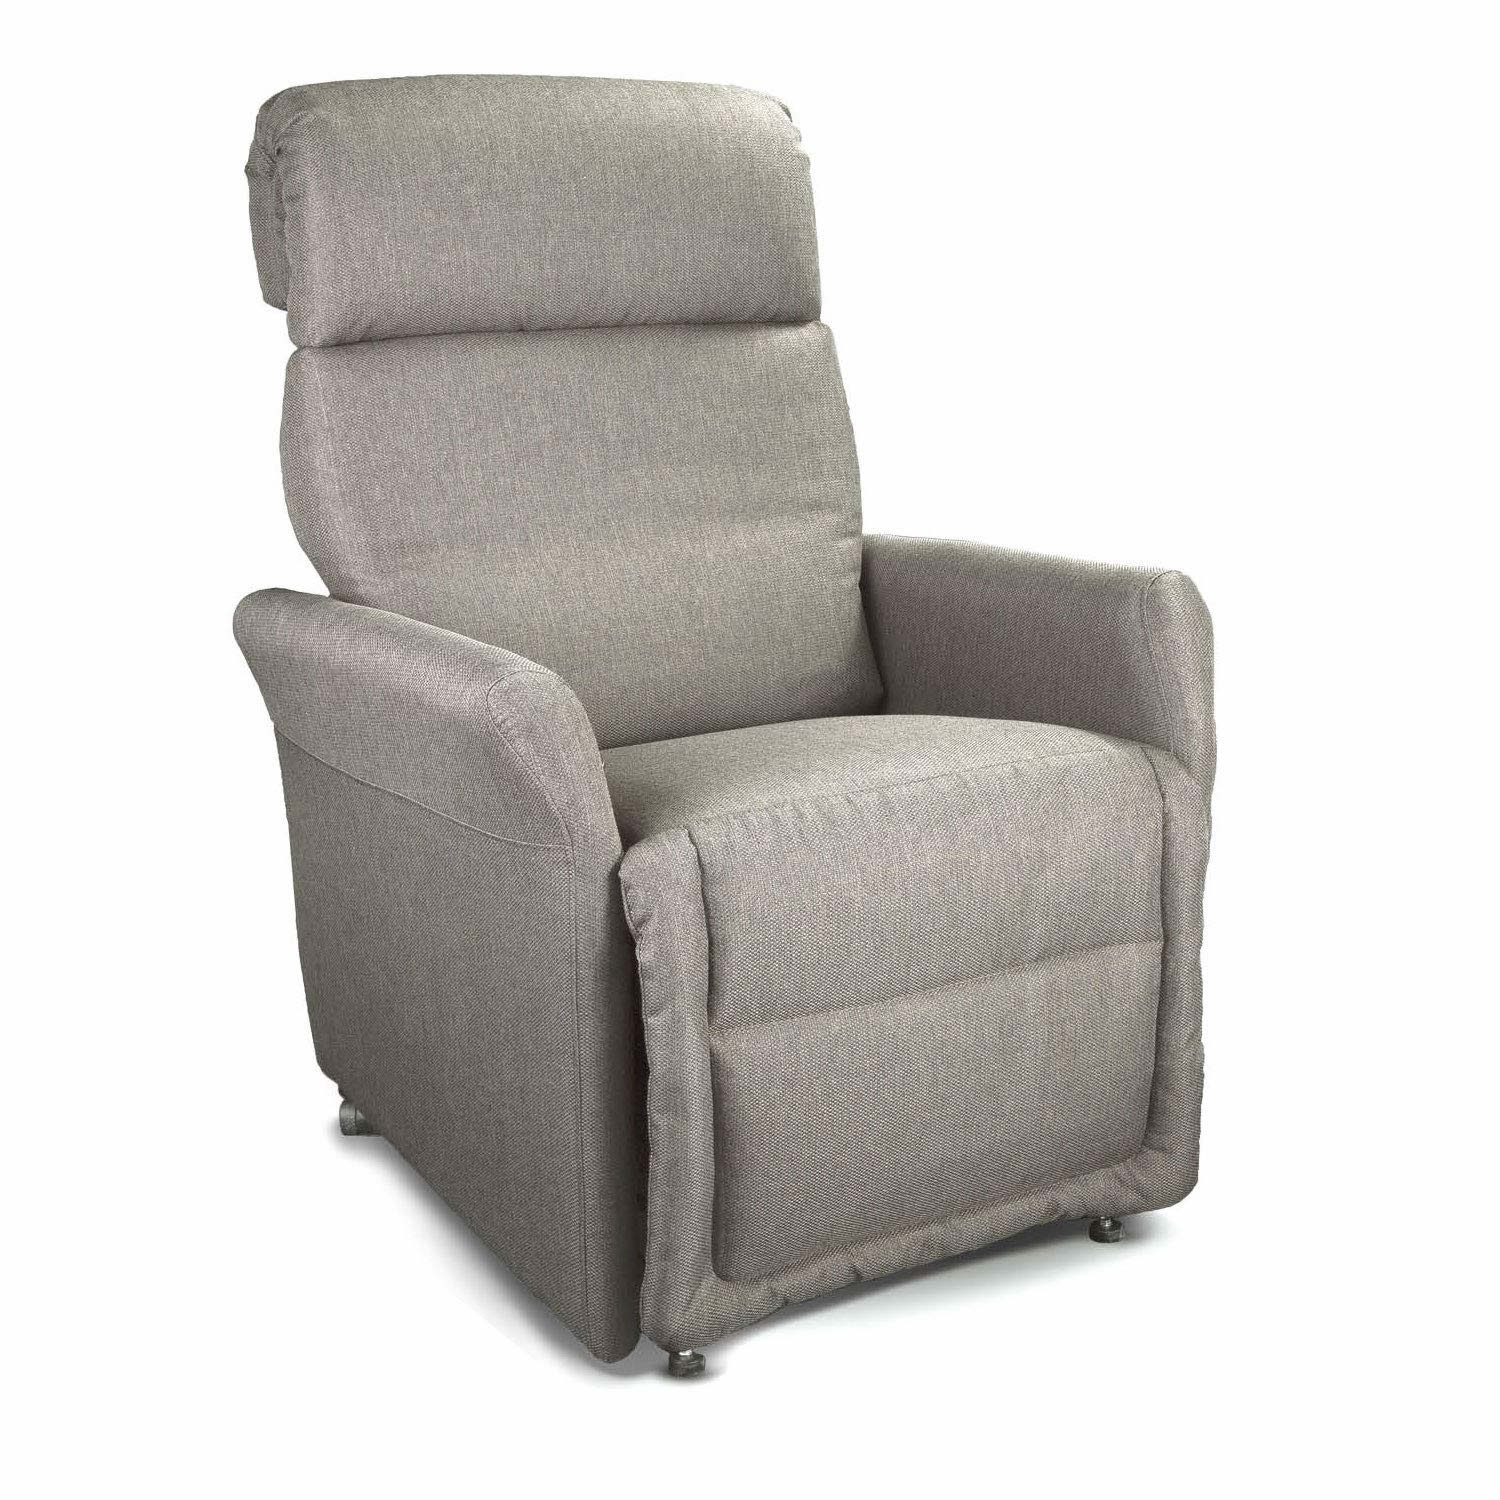 The Perfect Sleep Chair Cost